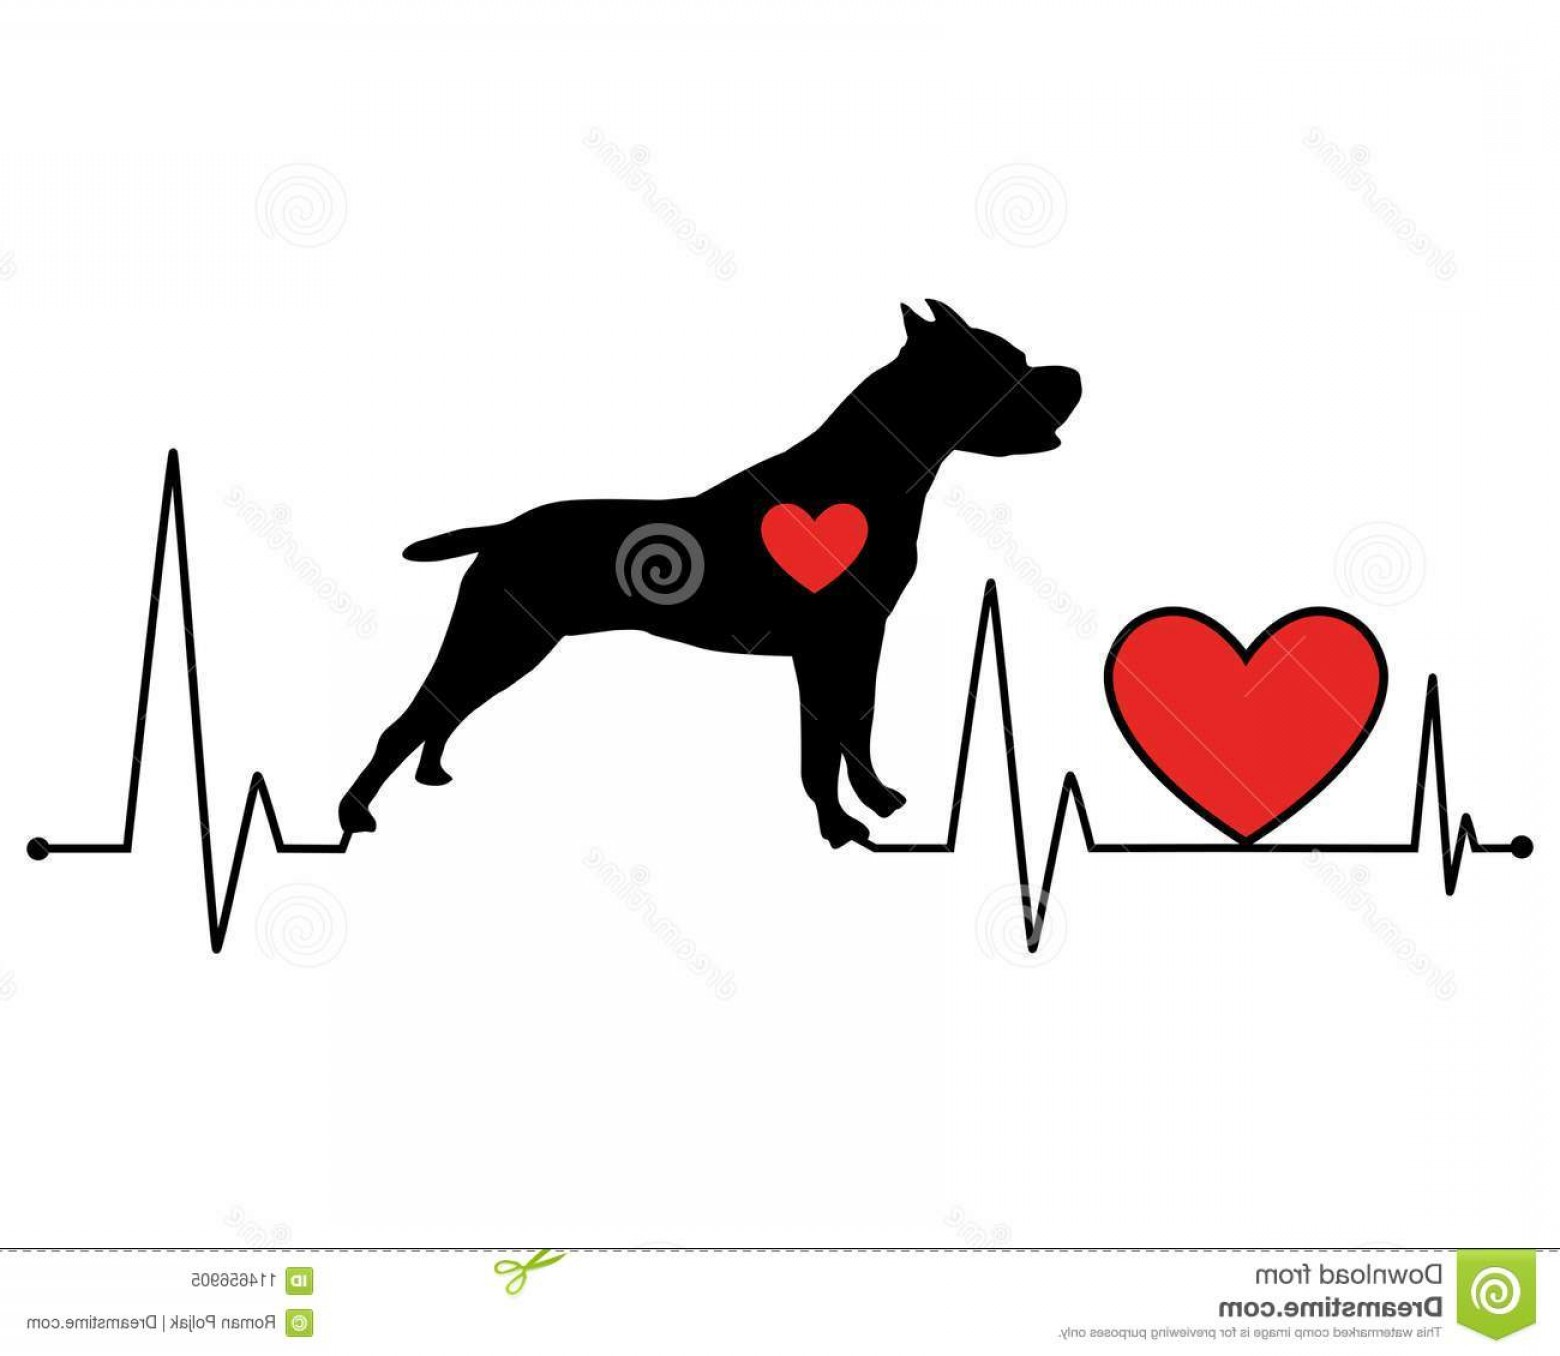 Pit Silhouette Vector: Pit Bull Silhouette Heartbeat Line Vector Illustration Pit Bull Silhouette Heartbeat Line Vector Illustration Illustration Image